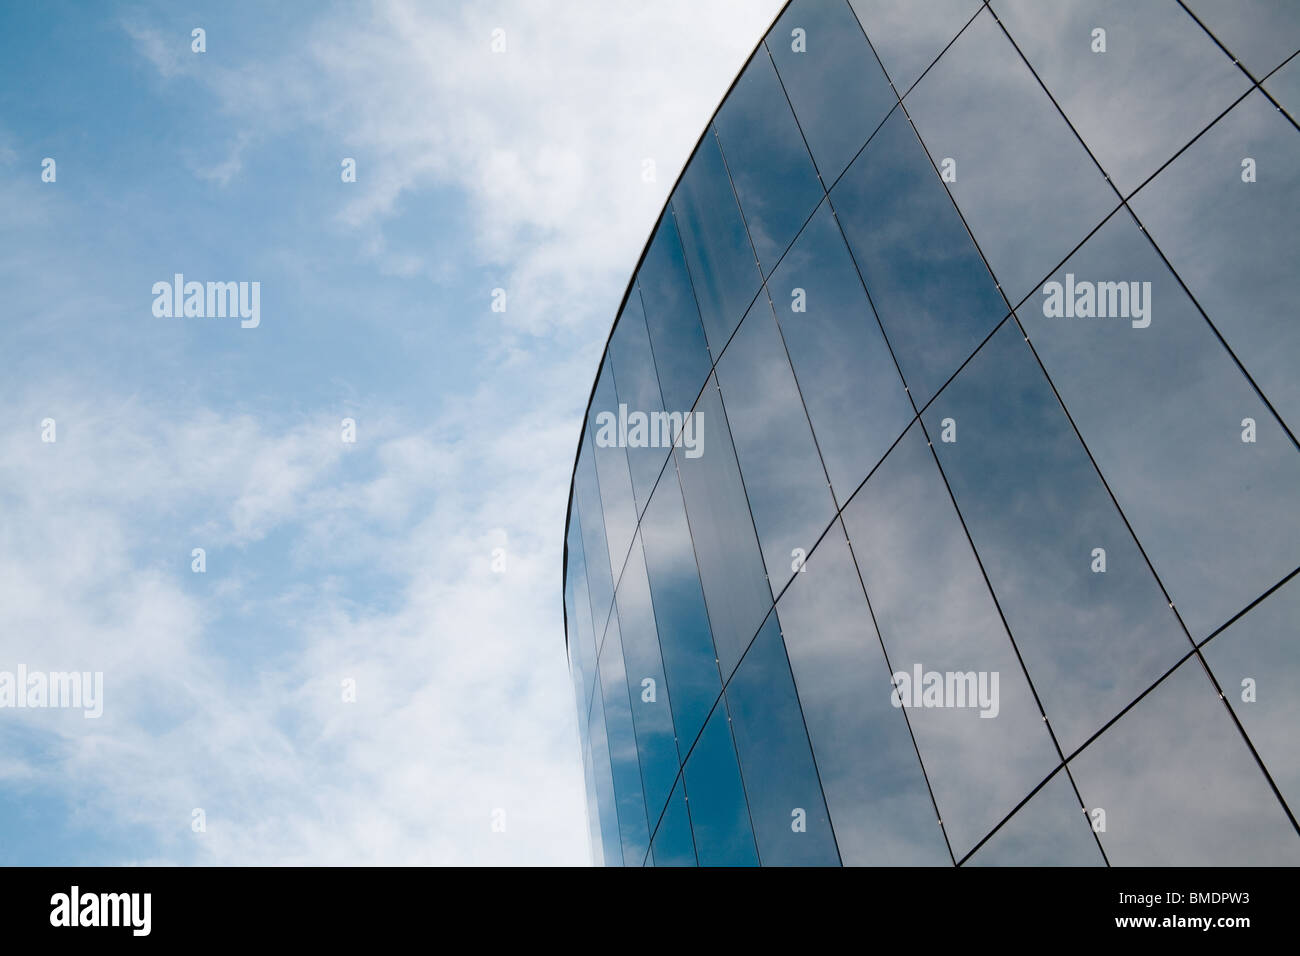 Modern round building reflecting the sky and clouds. - Stock Image